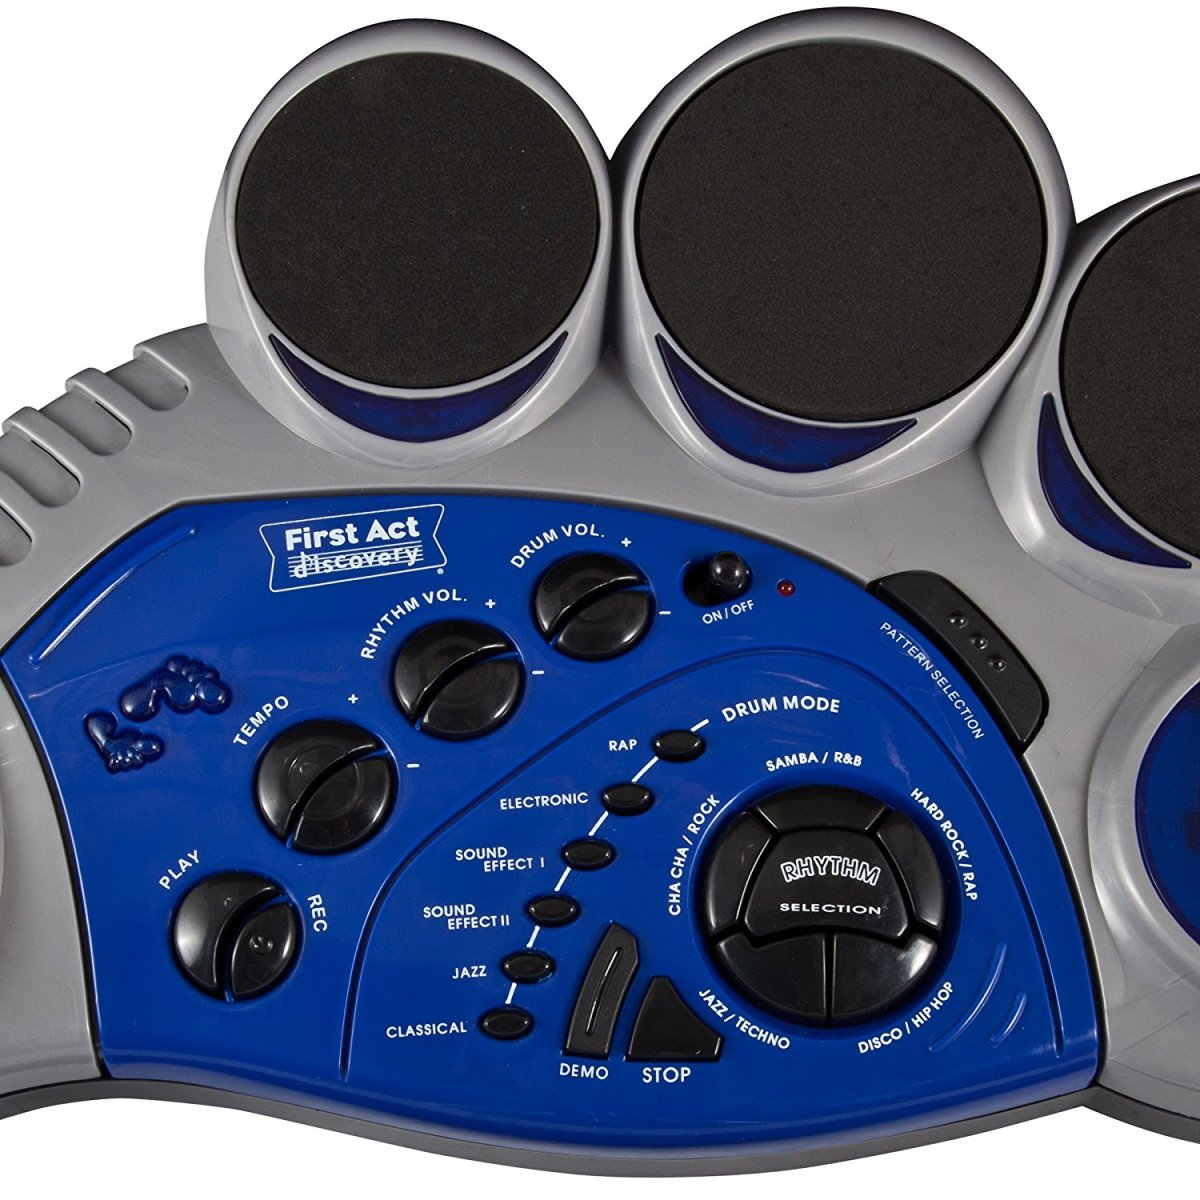 First Act FD213 5-pad electronic drums: perfect for younger kids and beginners